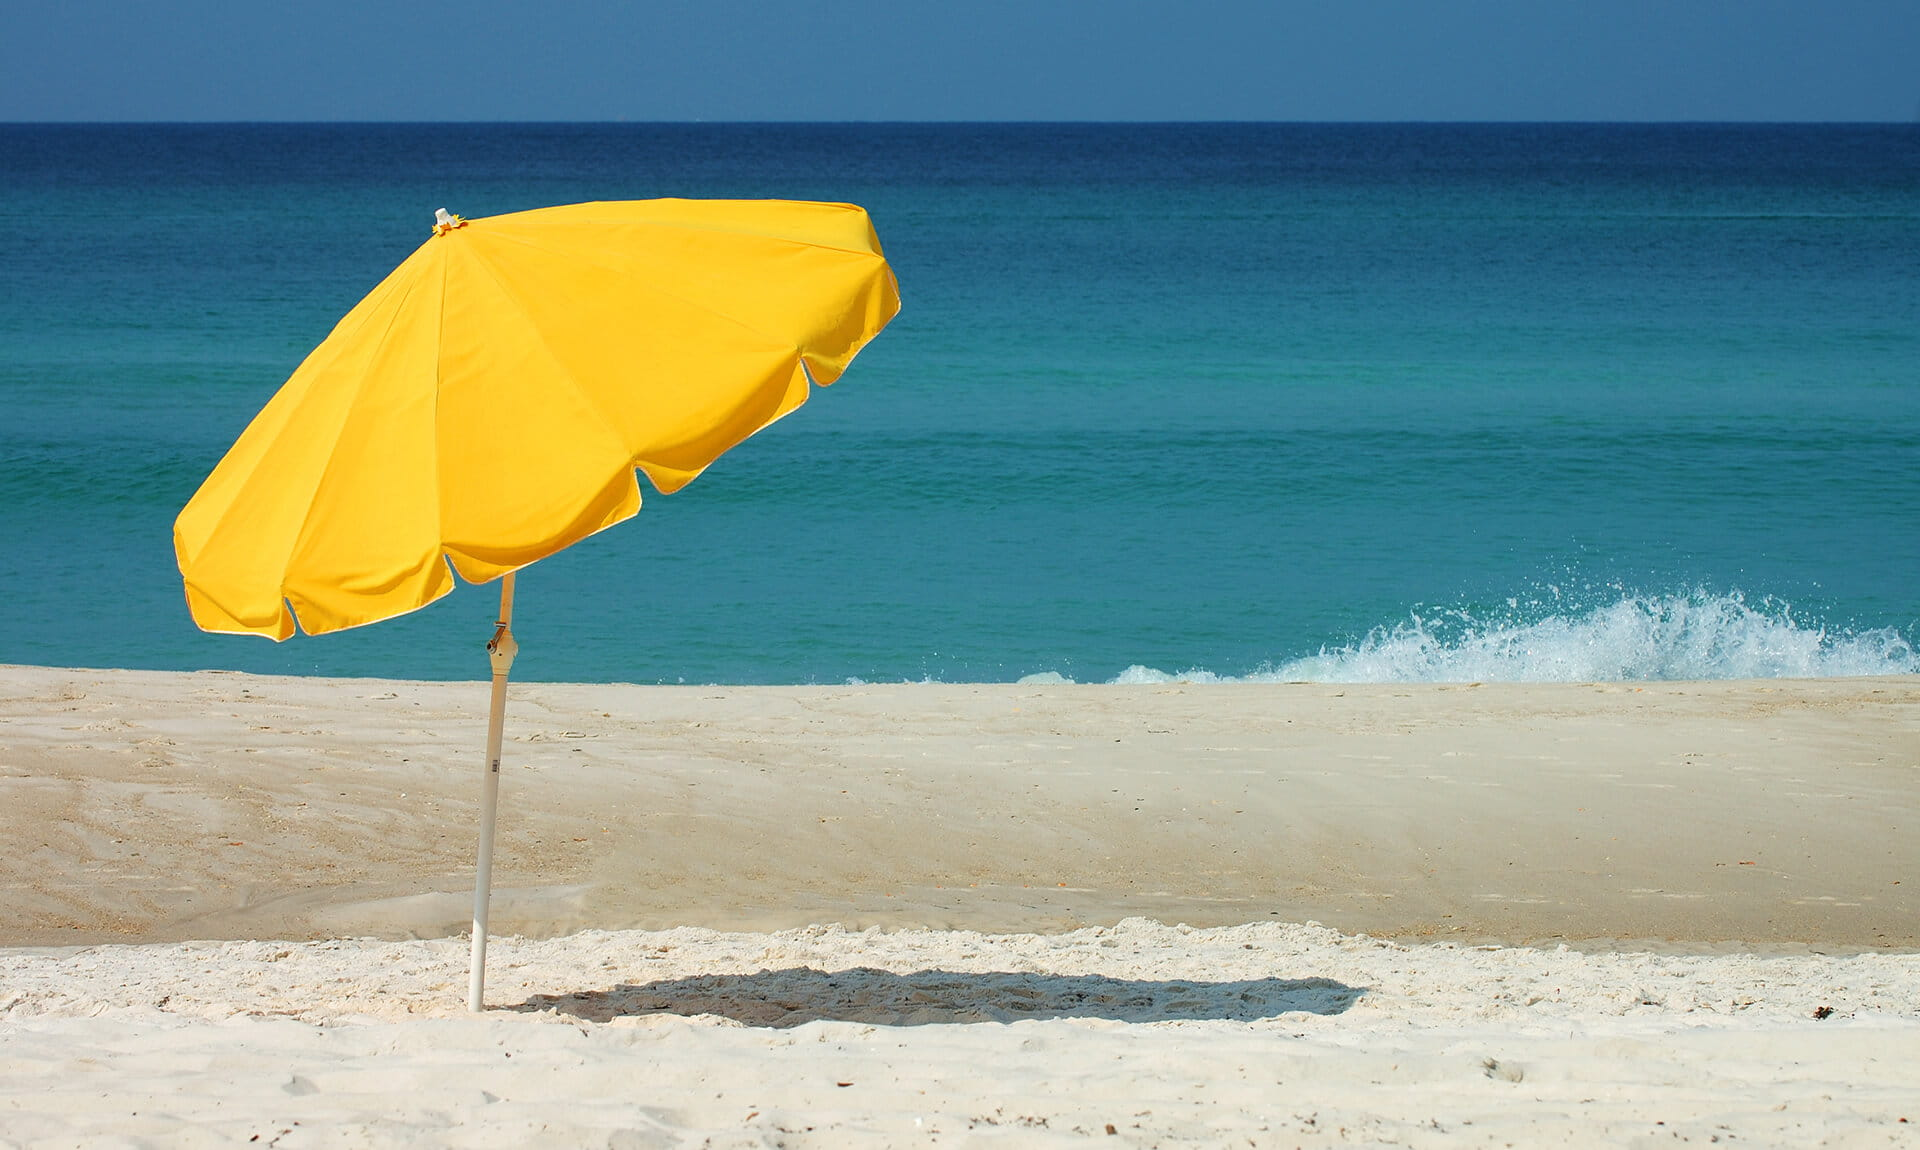 Florida Beach Yellow Umbrella